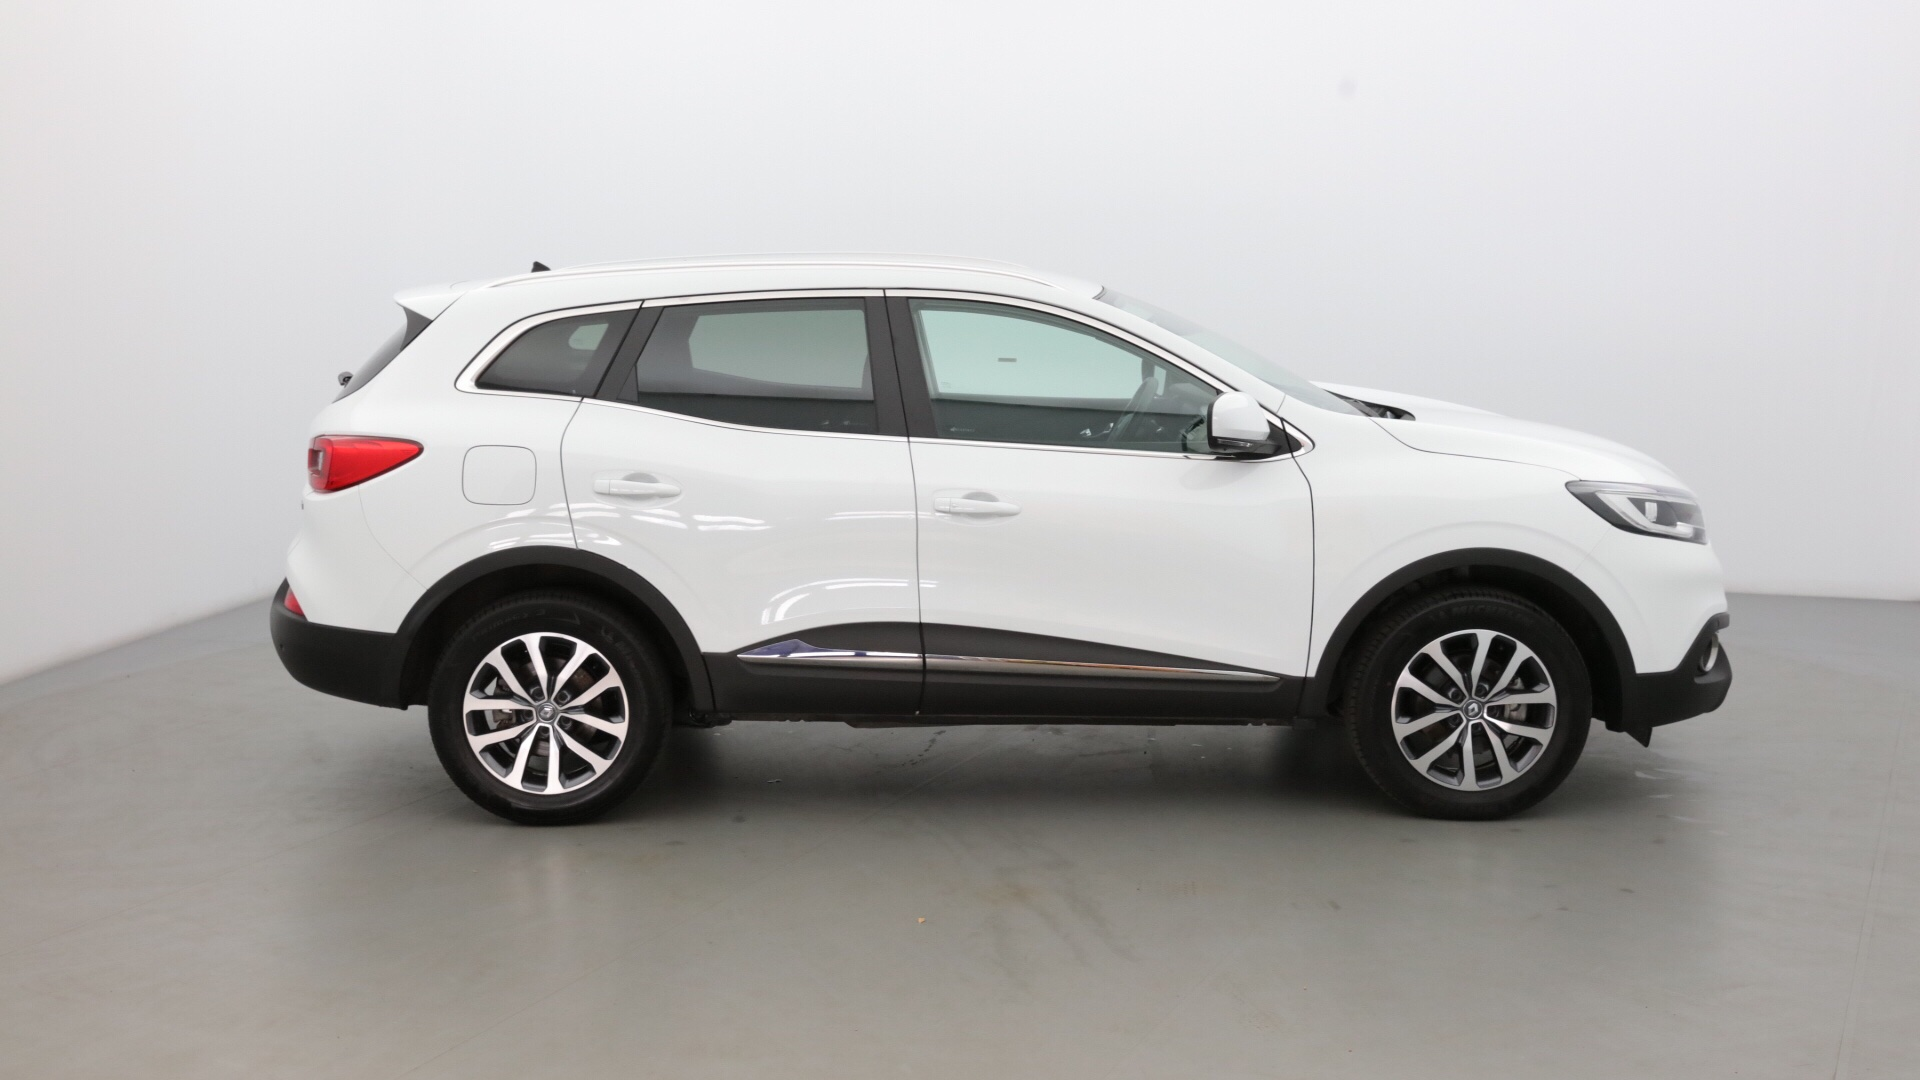 RENAULT KADJAR 1.5 DCI 110CH ENERGY BUSINESS ECO² - Miniature 4